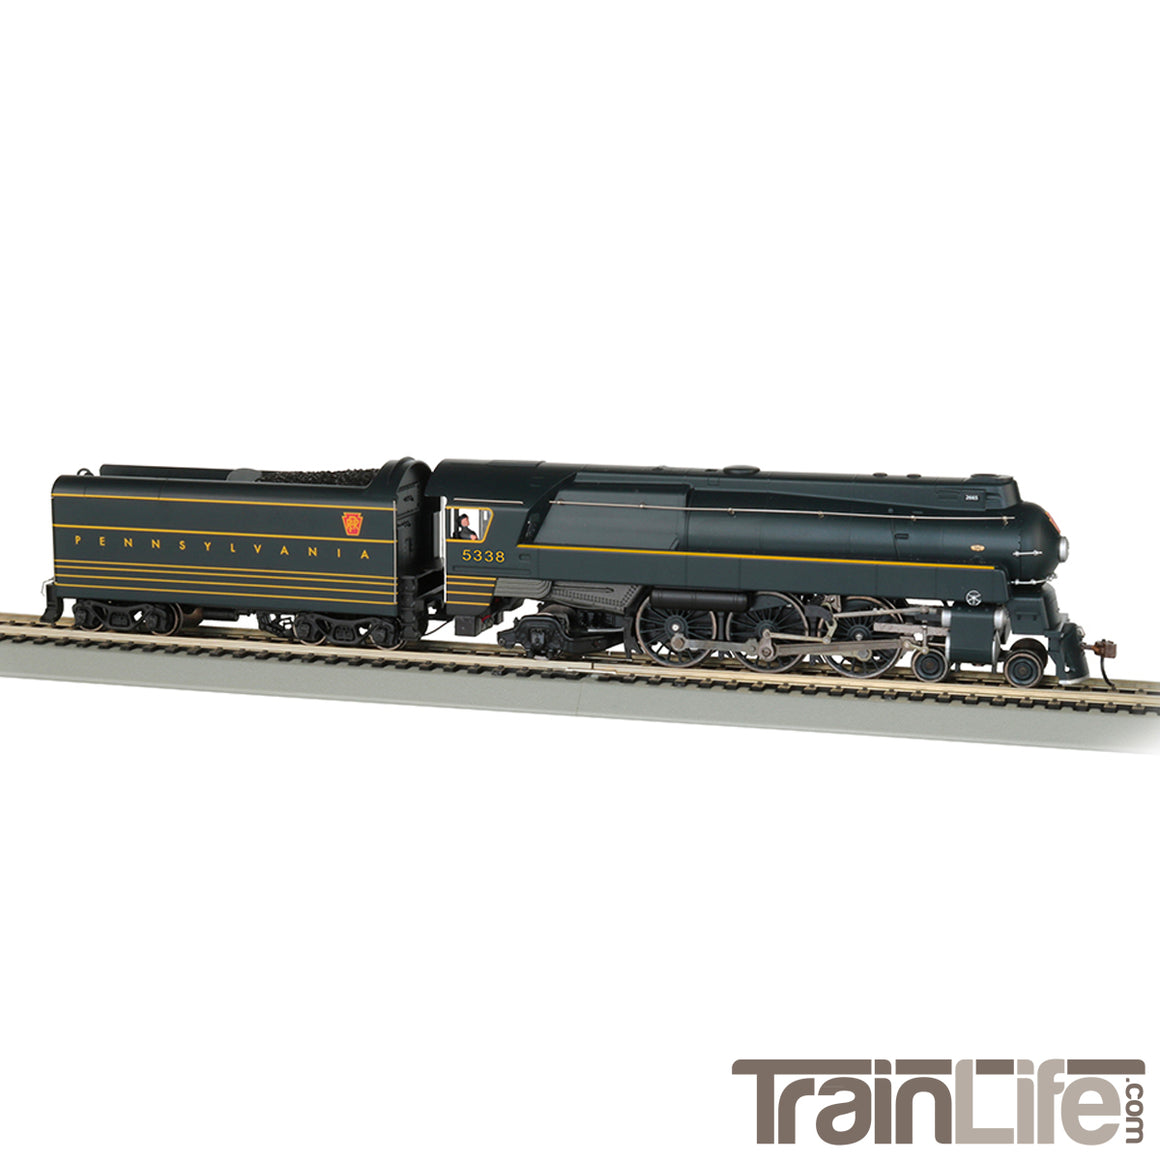 HO Scale: Streamlined K4 4-6-2 - DCC & Sound - PRR